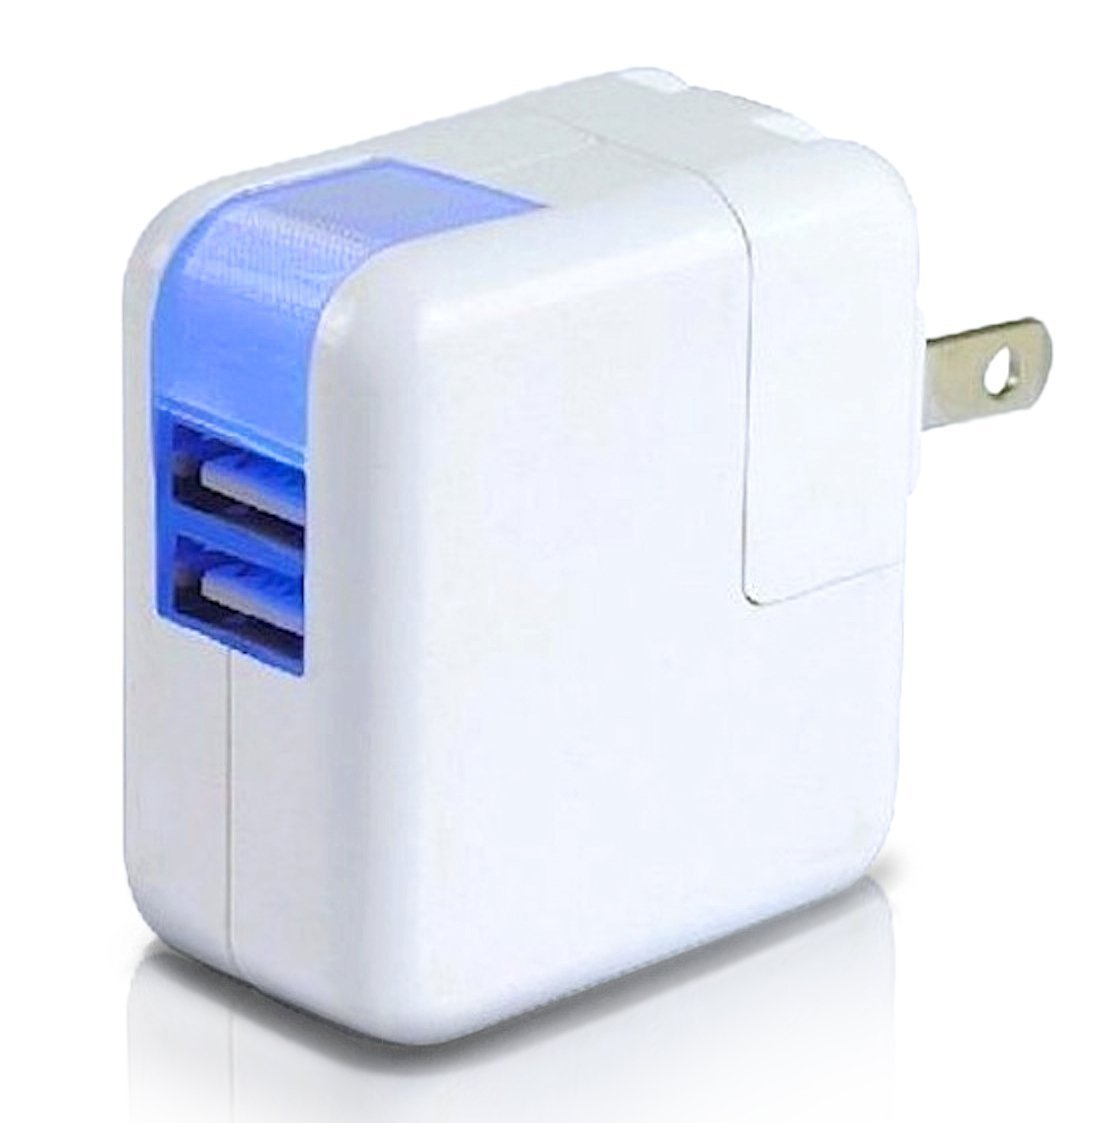 Flowzzz Dual Usb Fast In Wall Charger Device Designed For Apple Iphone